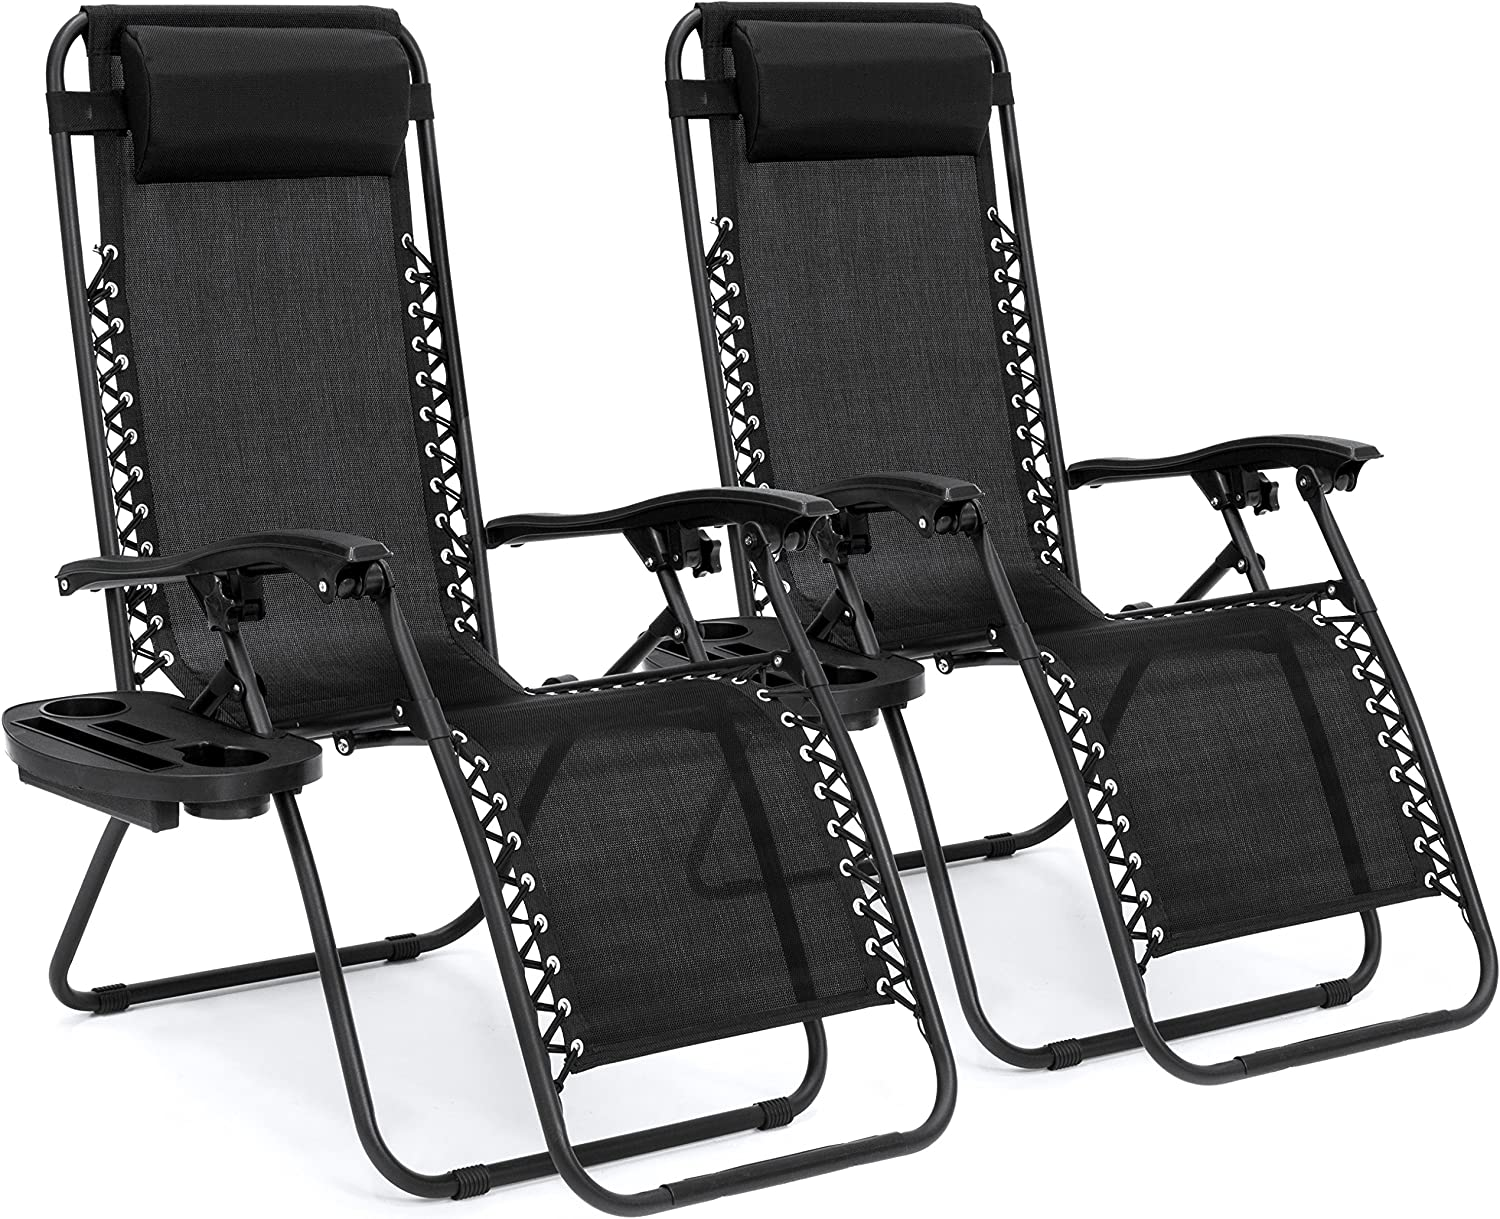 2 Adjustable and Affordable zero gravity chair with cup holder.